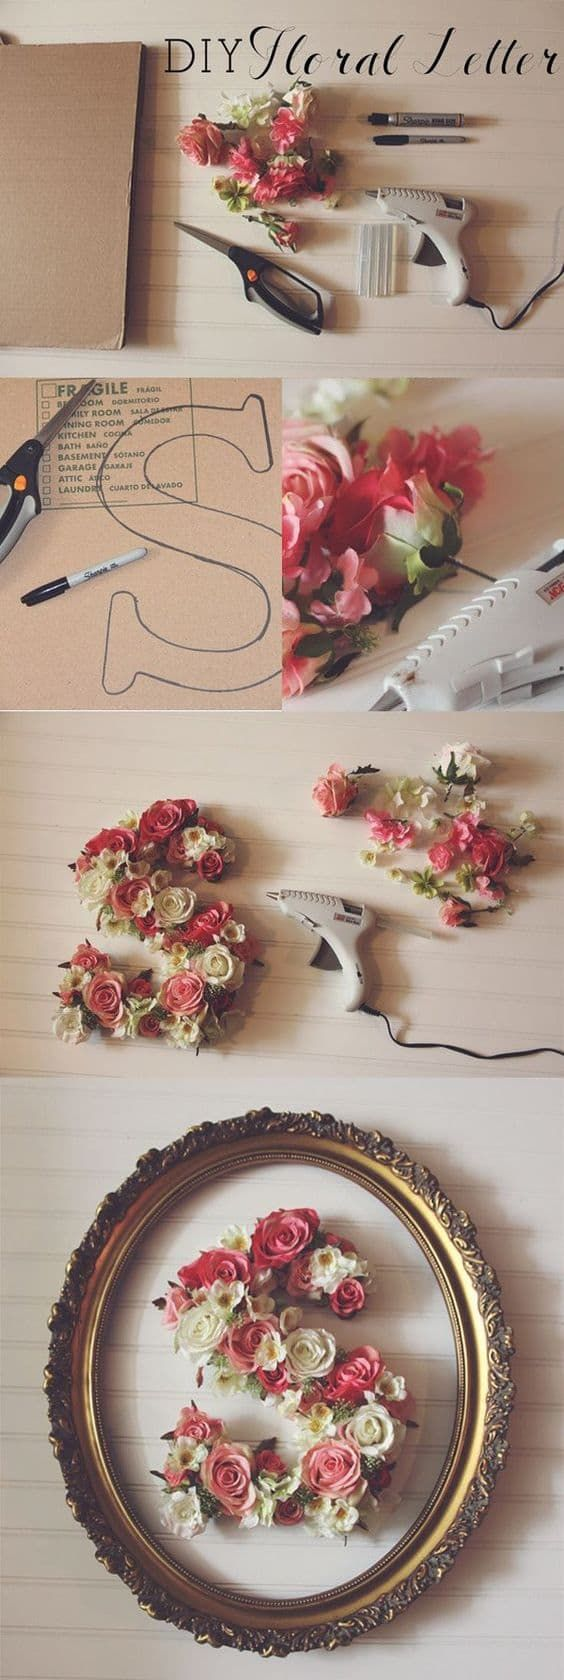 Floral Letters DIY Wall Art Easy Video Instructions – getting crafty